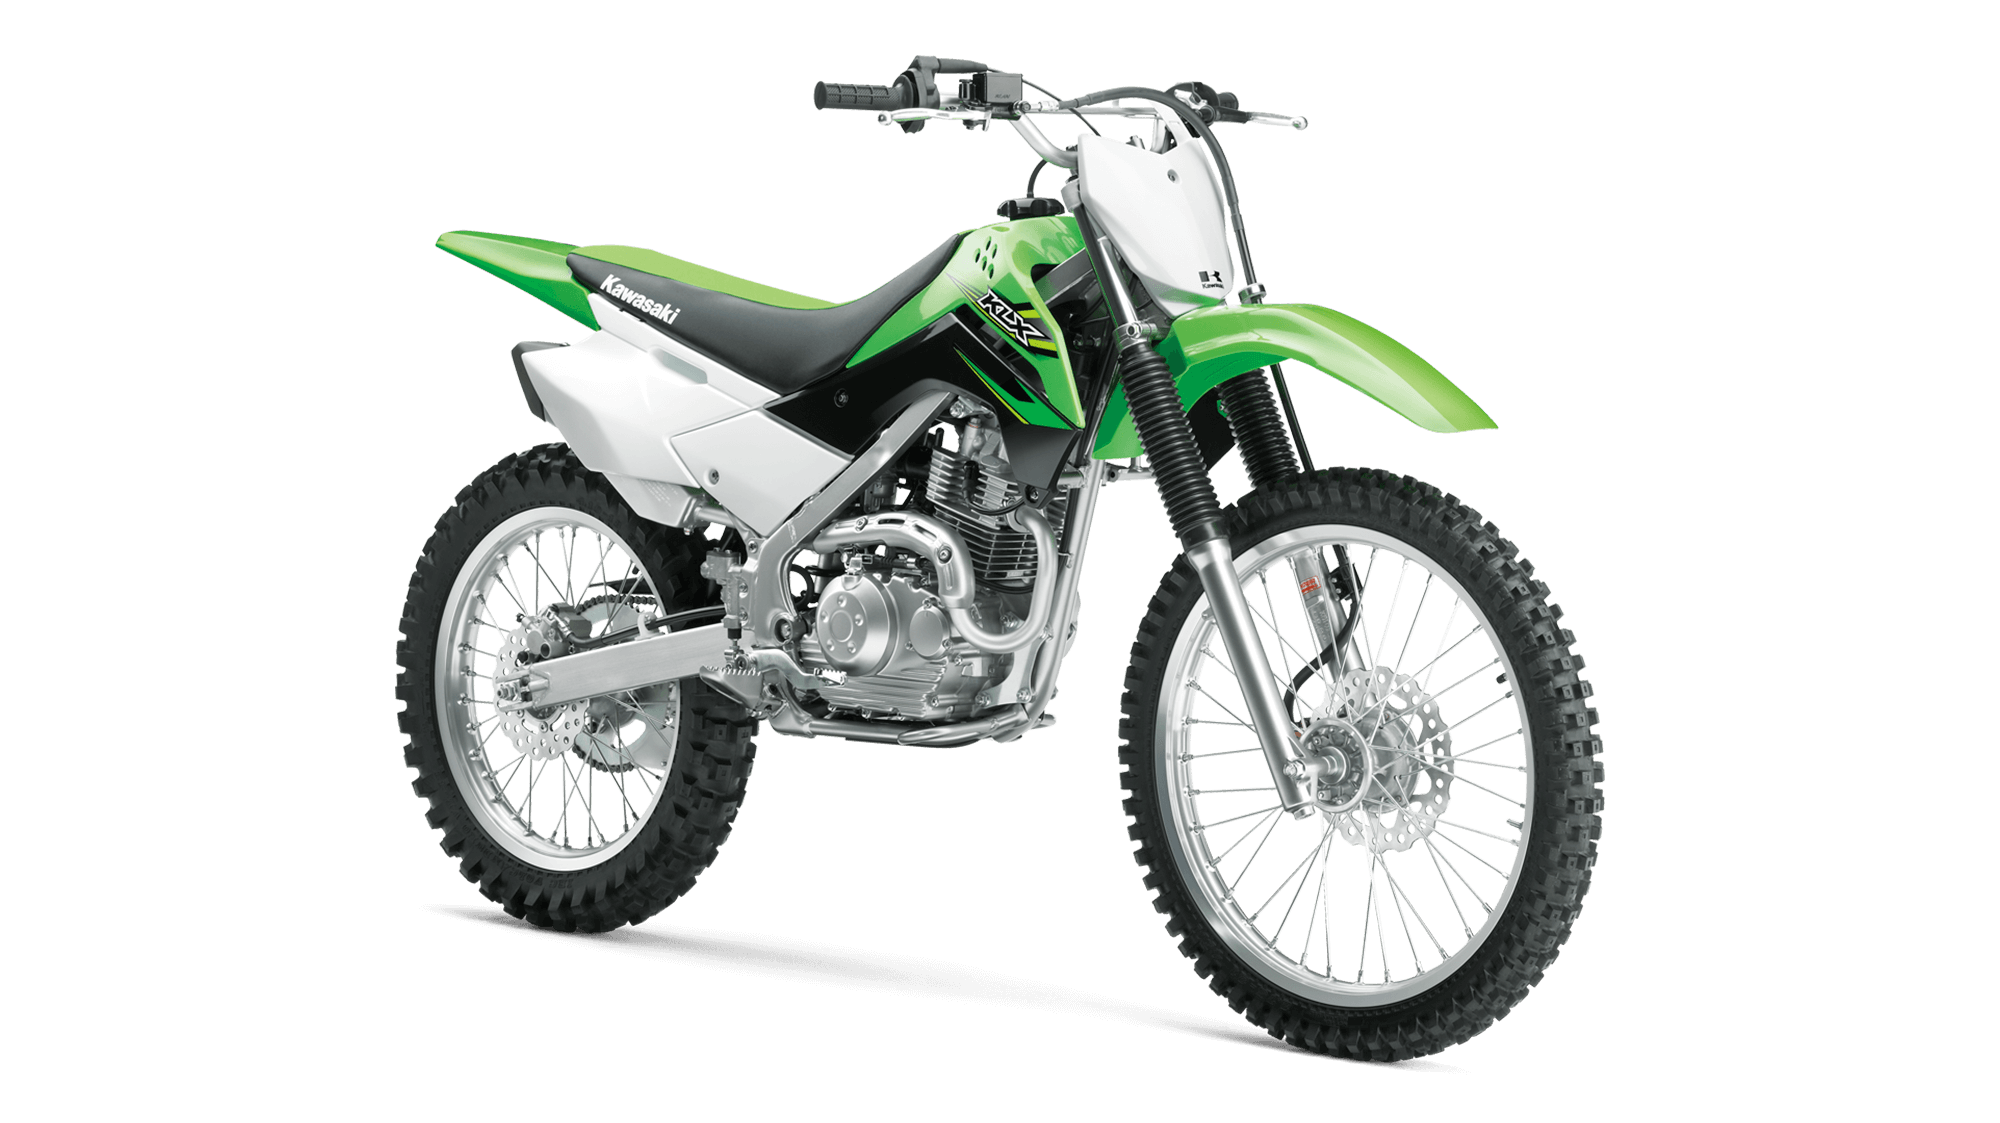 Kawasaki Klx 140g Dirt Bike Introduced In India At Rs 3 91